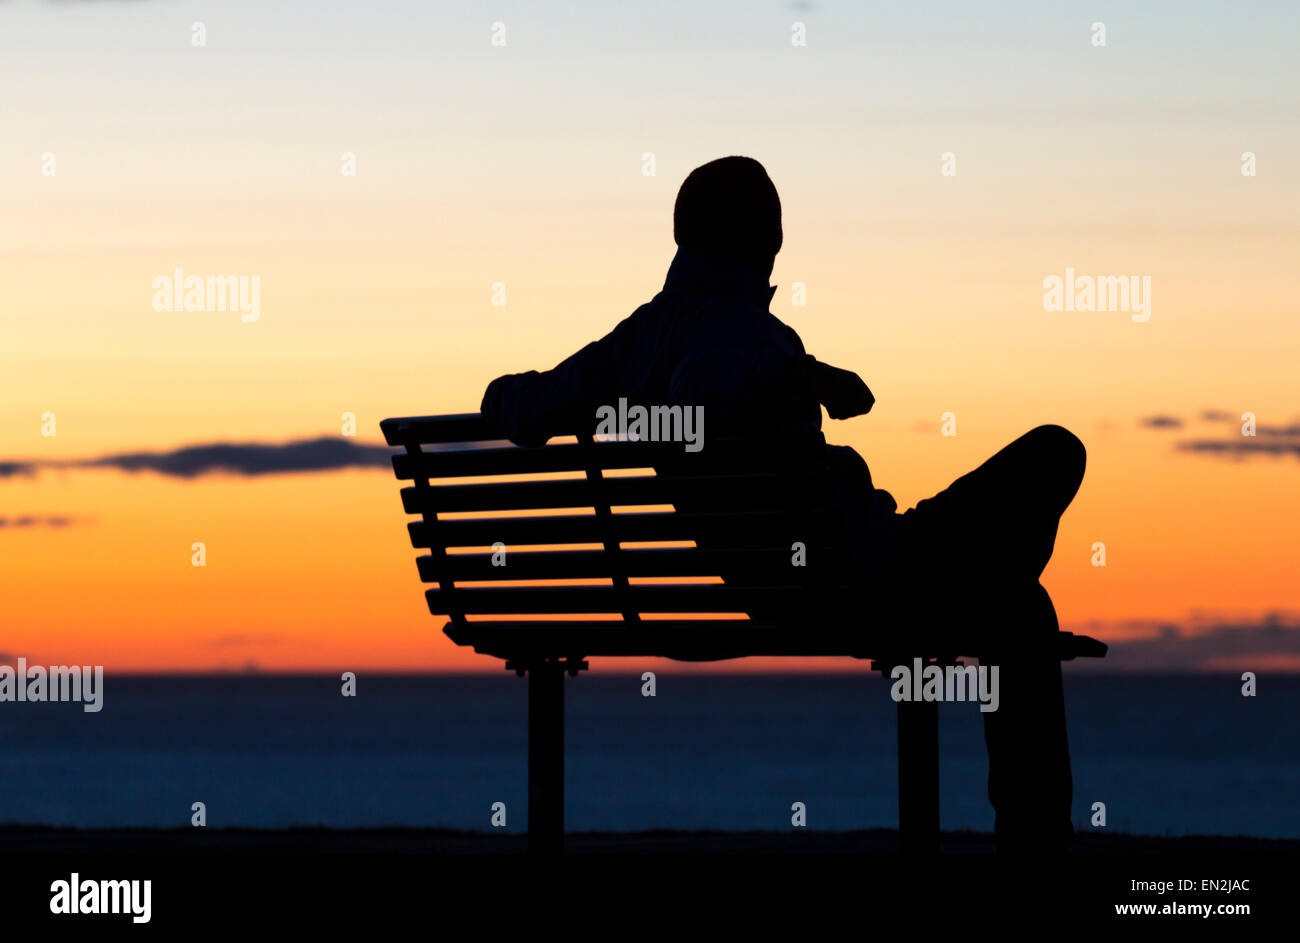 Depression, loneliness... concept image. Silhouette of man sitting alone on seat overlooking sea at sunset. - Stock Image